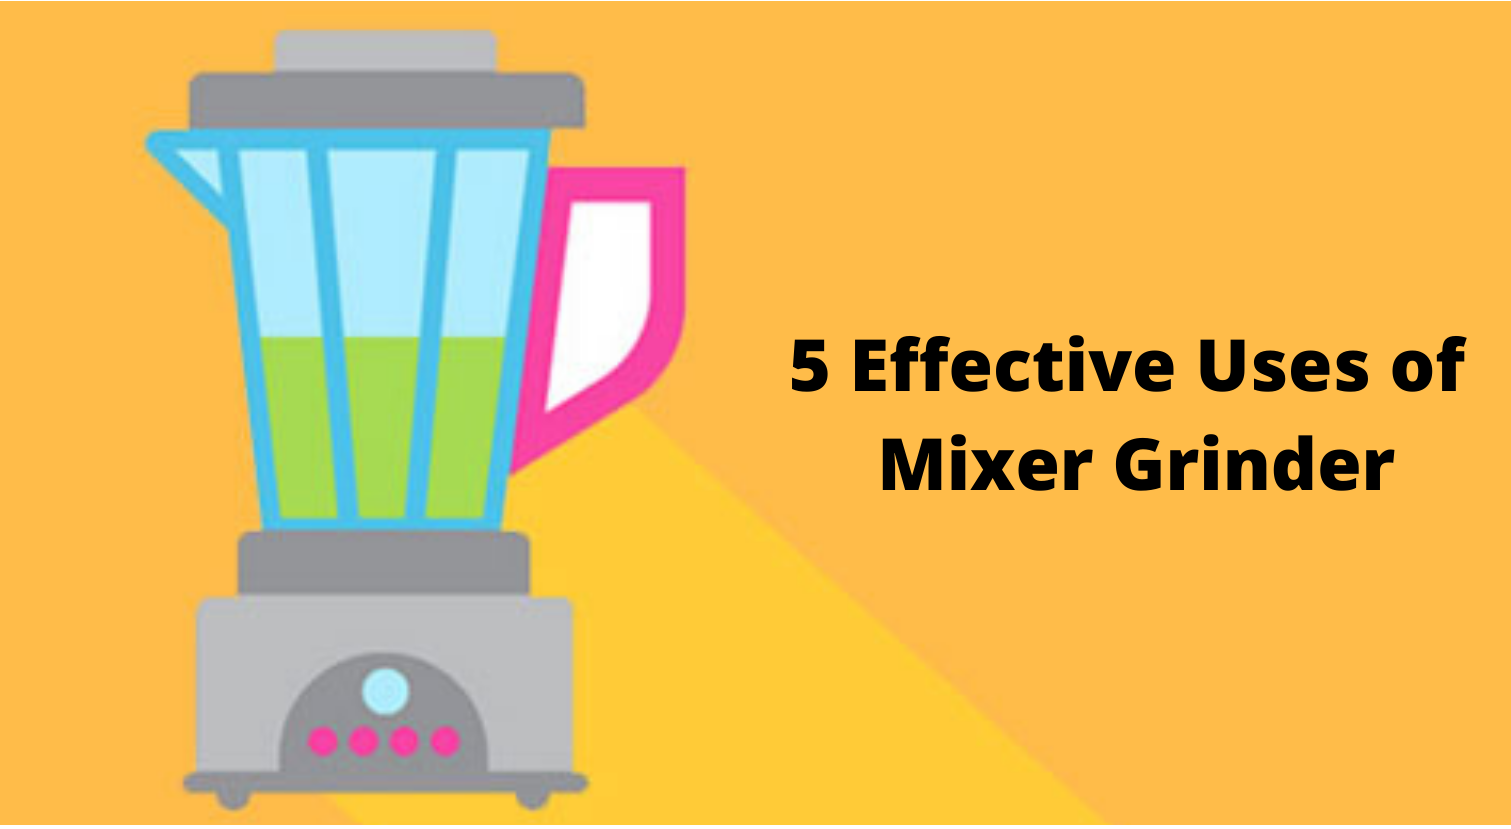 5 Effective Uses of Mixer Grinder in Everyday Household